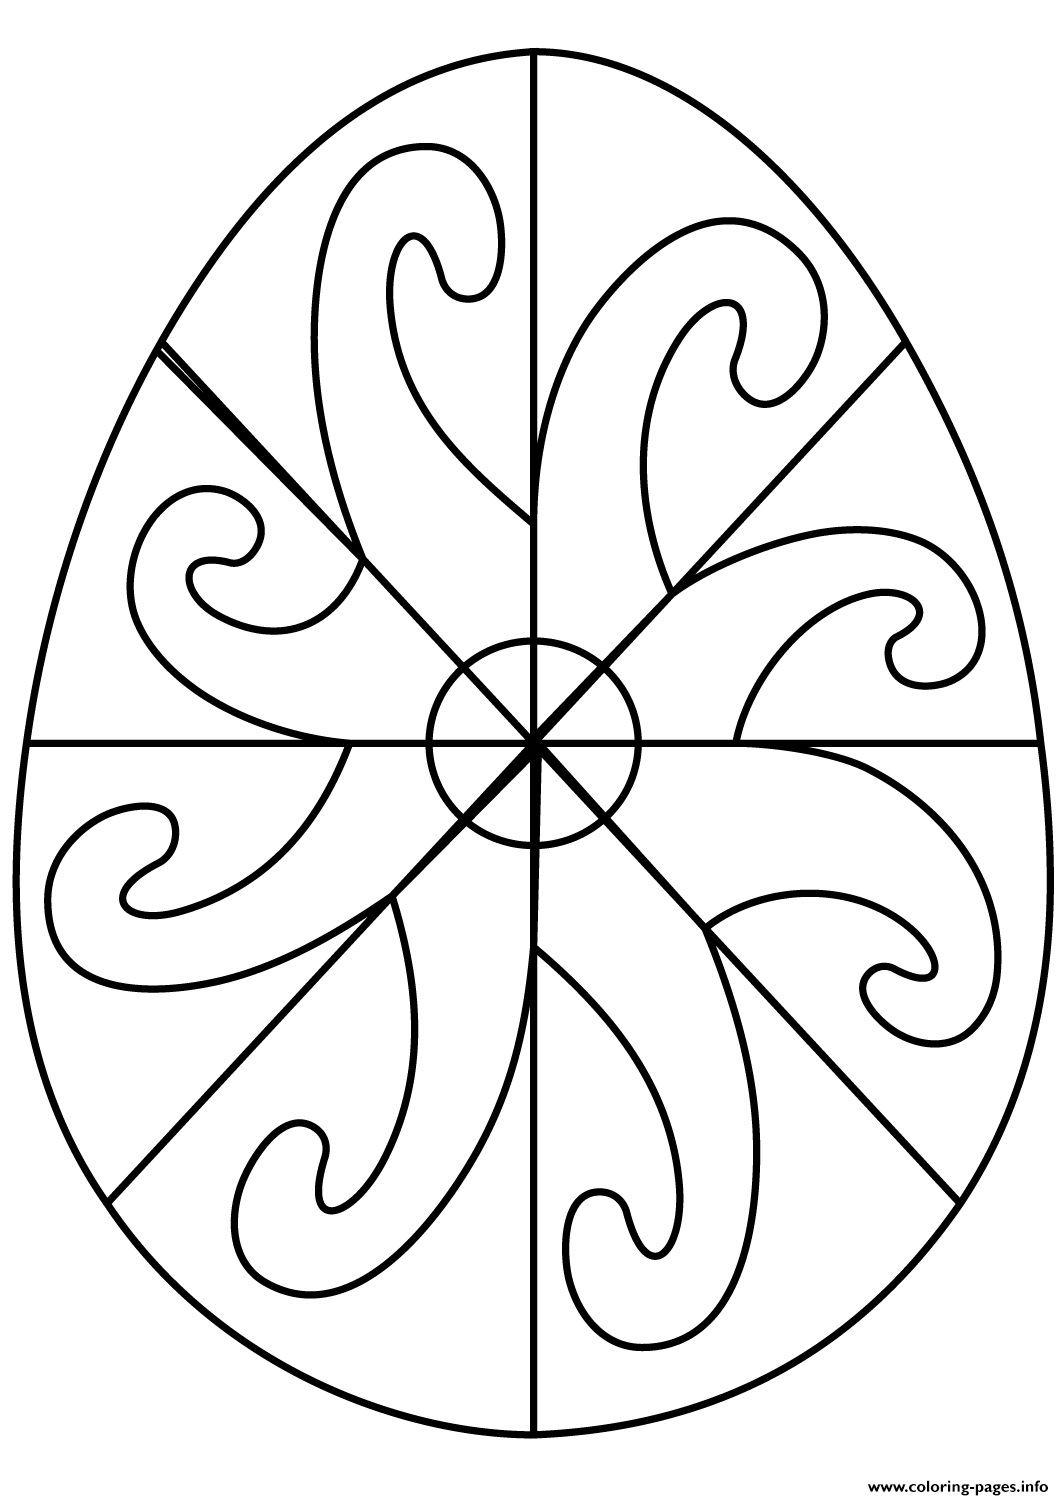 Easter Egg with Spiral Pattern Coloring Pages Printable Gallery Of Easter Coloring14 Gallery